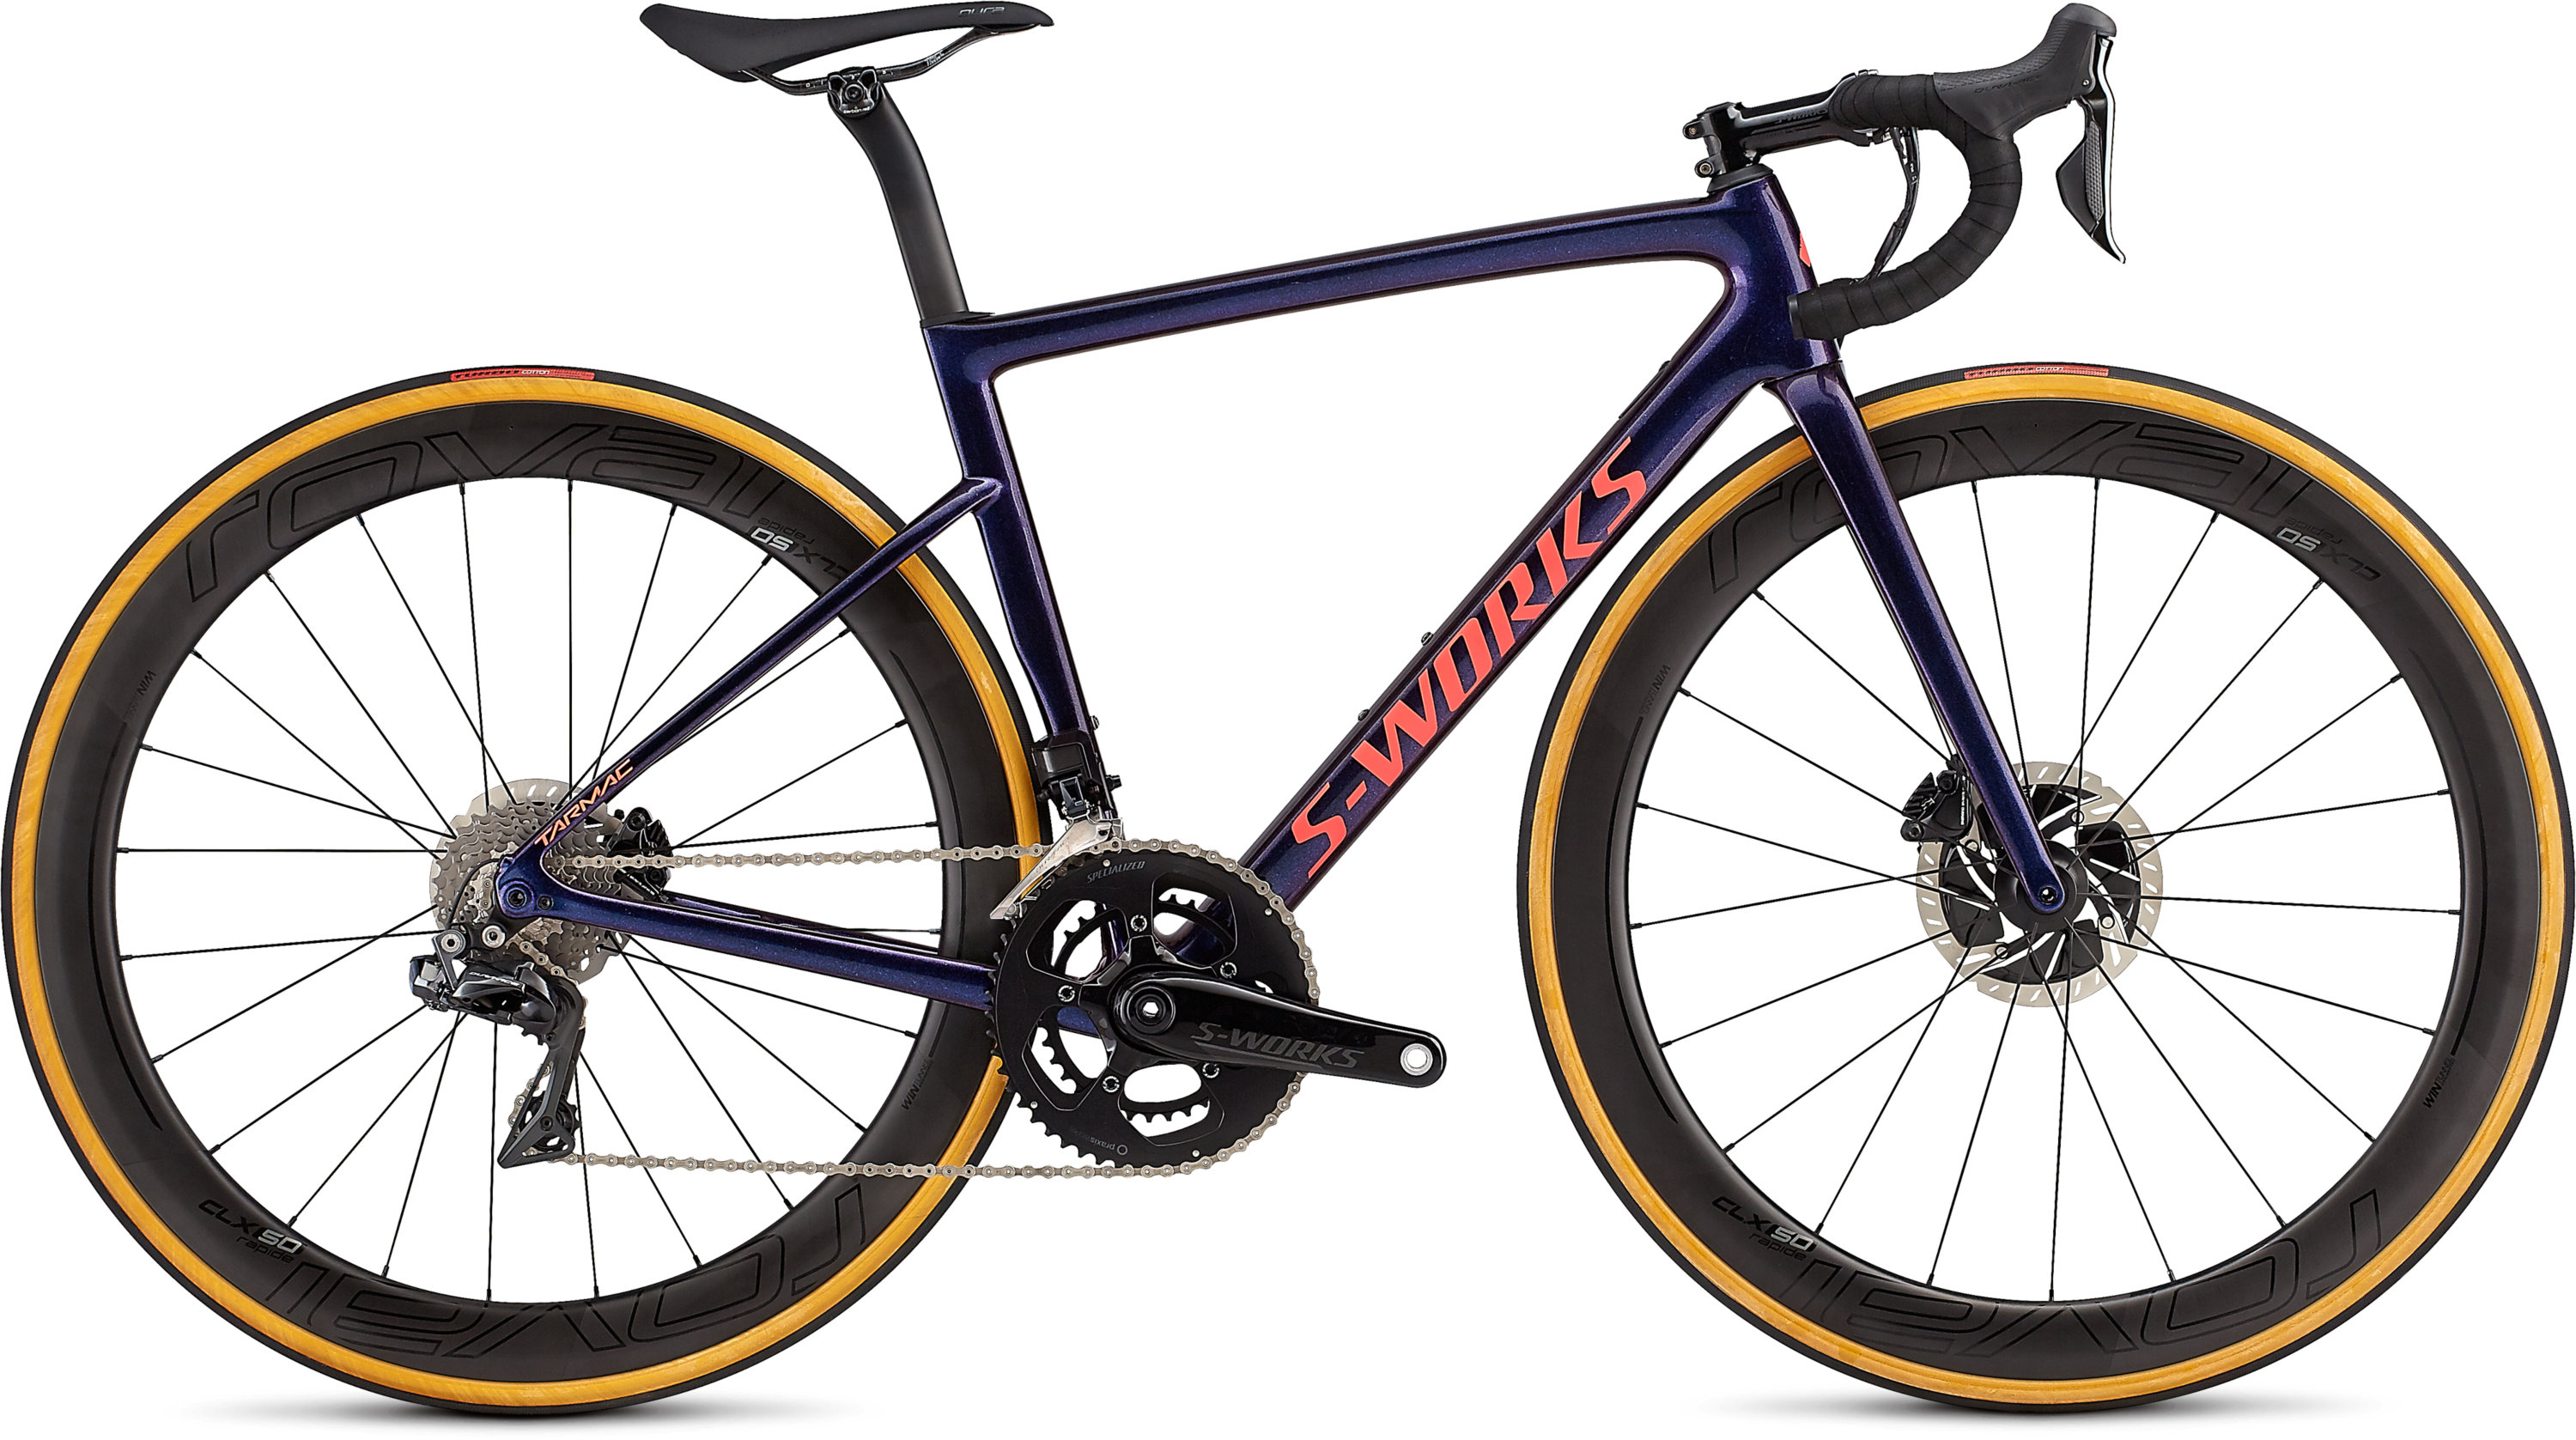 2019 Specialized Women S S Works Tarmac Disc Specialized